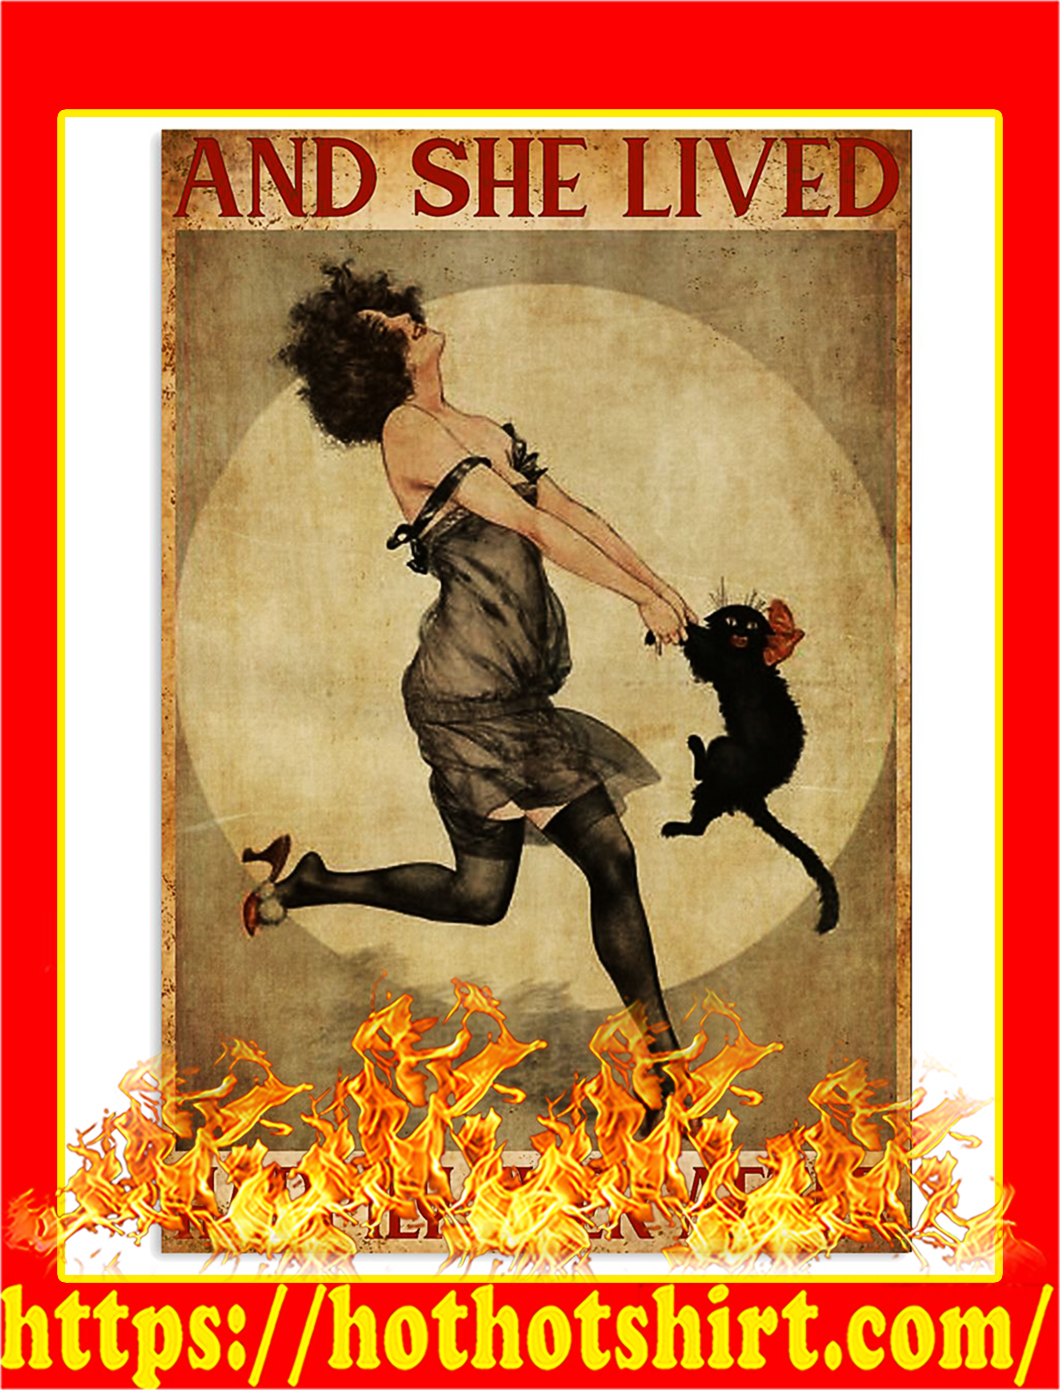 Black cat And she lived happily ever after poster - A1